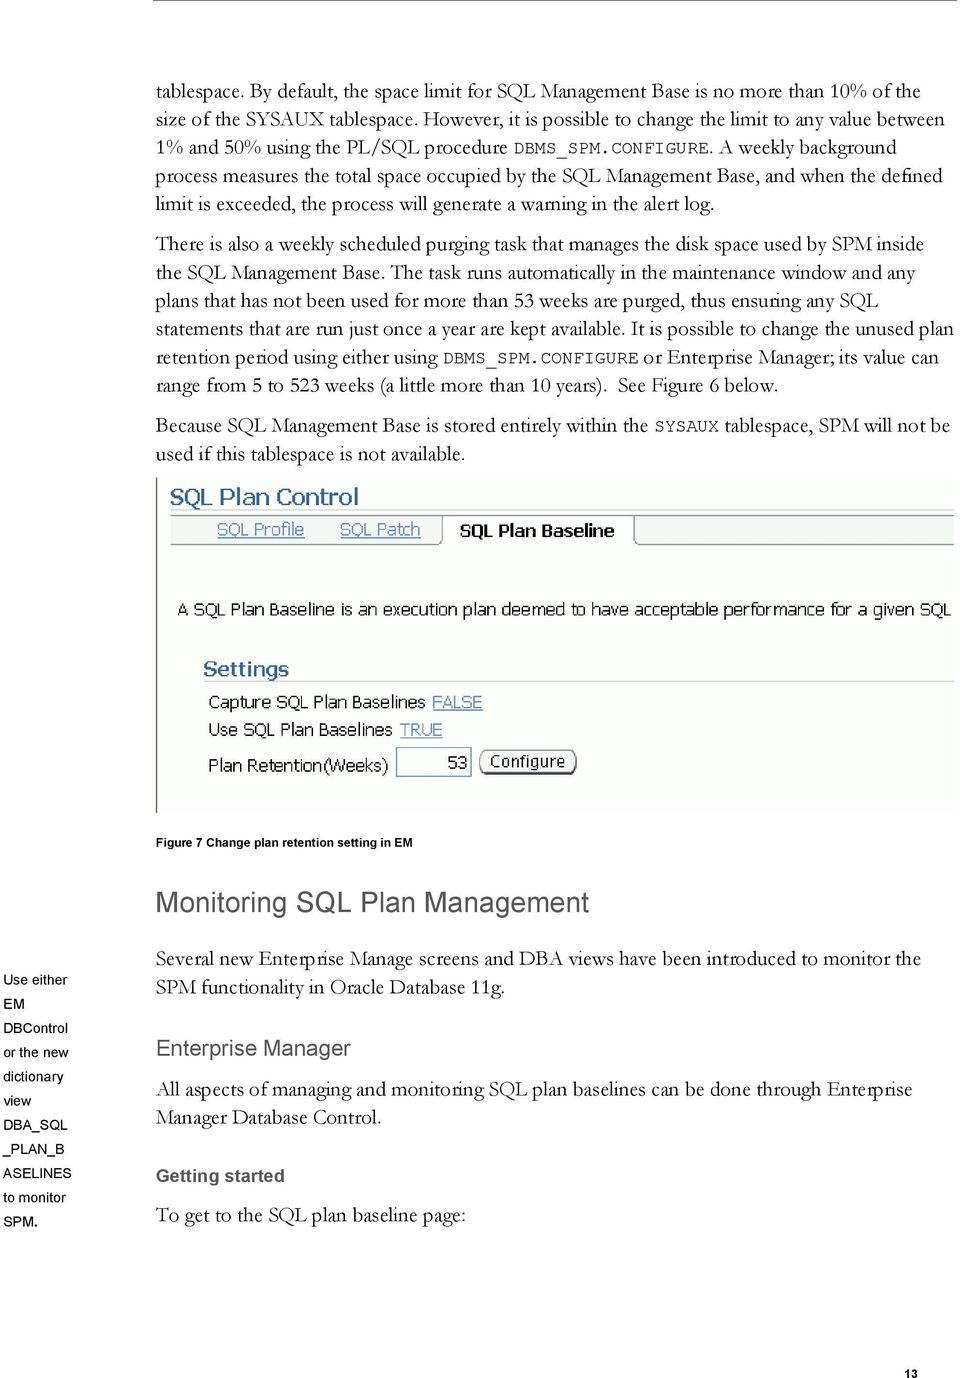 A weekly background process measures the total space occupied by the SQL Management Base, and when the defined limit is exceeded, the process will generate a warning in the alert log.